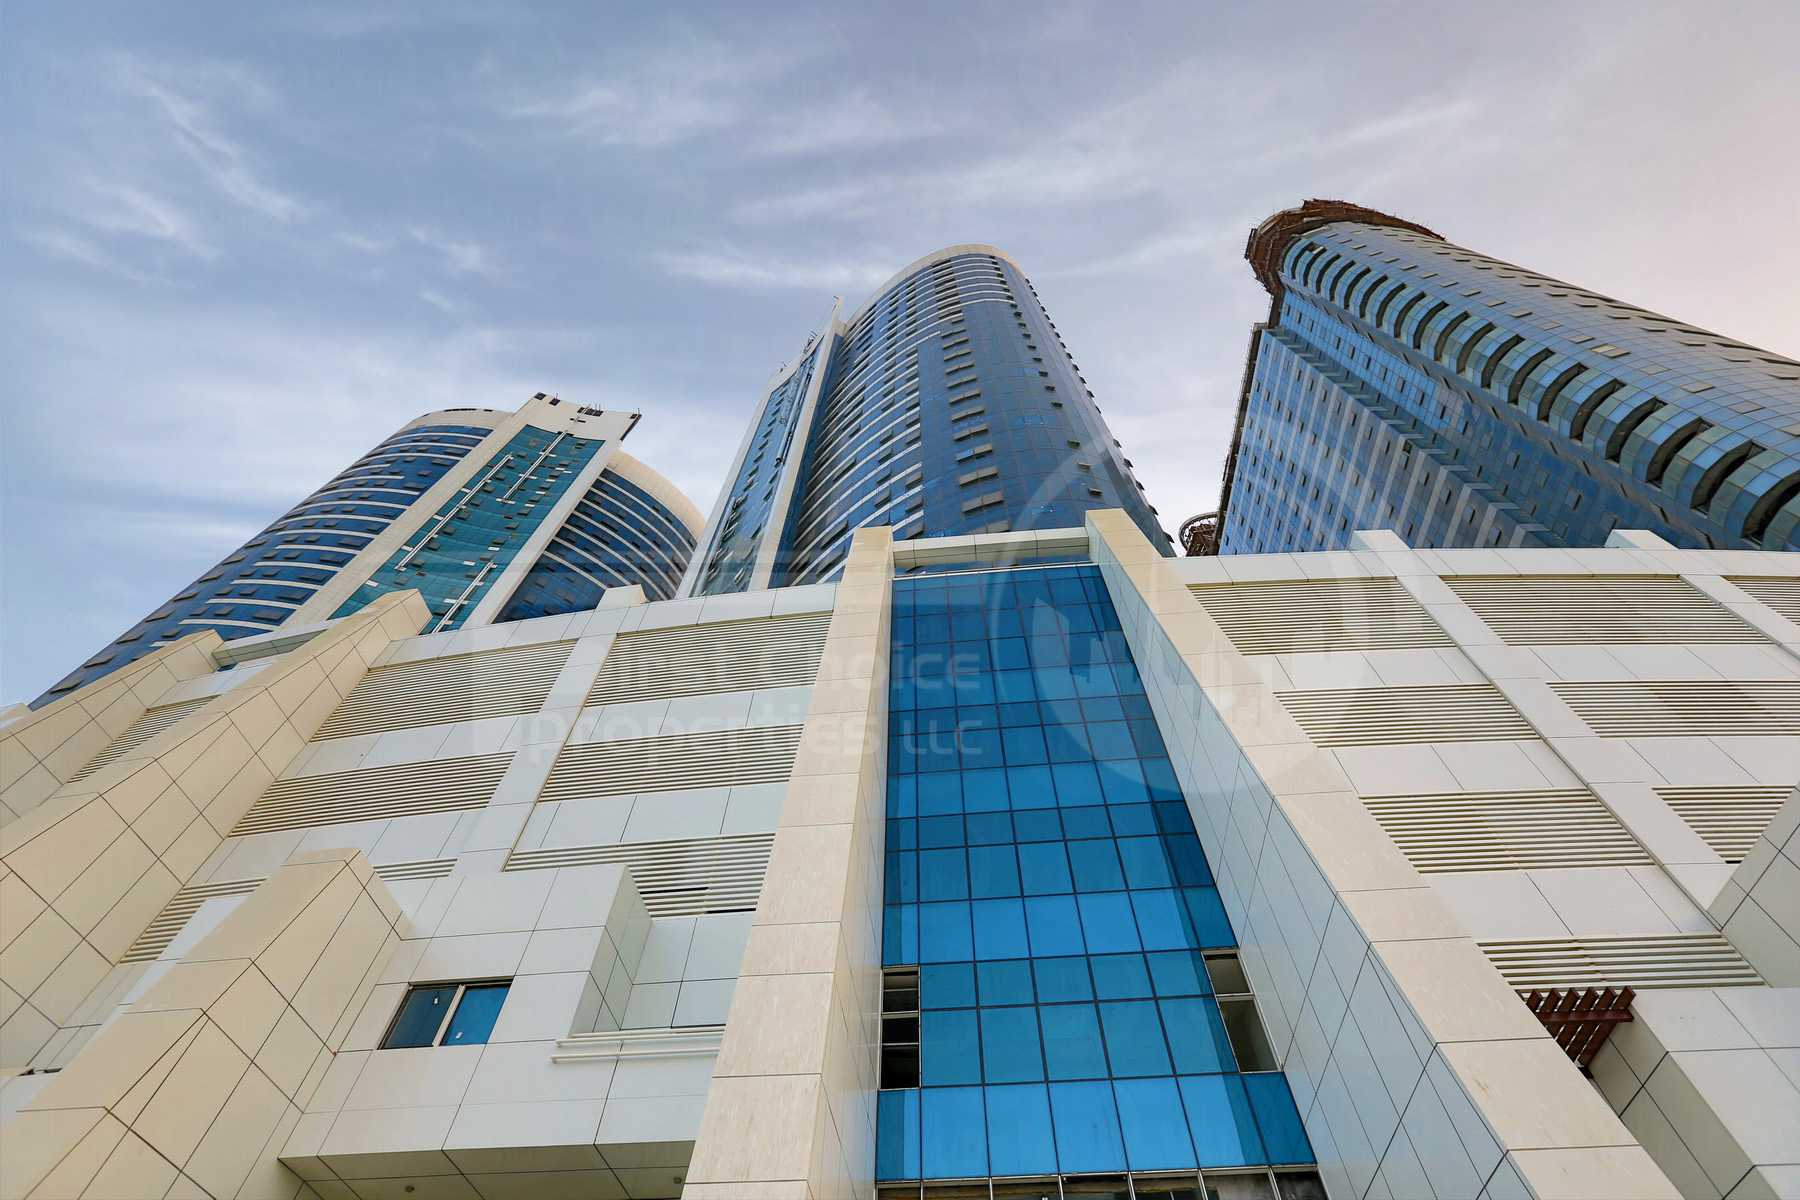 Studio - 1BR - 2BR - 3BR - 4BR Apartment - Abu Dhabi - UAE - Al Reem Island - Hydra Avenue - Outside View (30).jpg